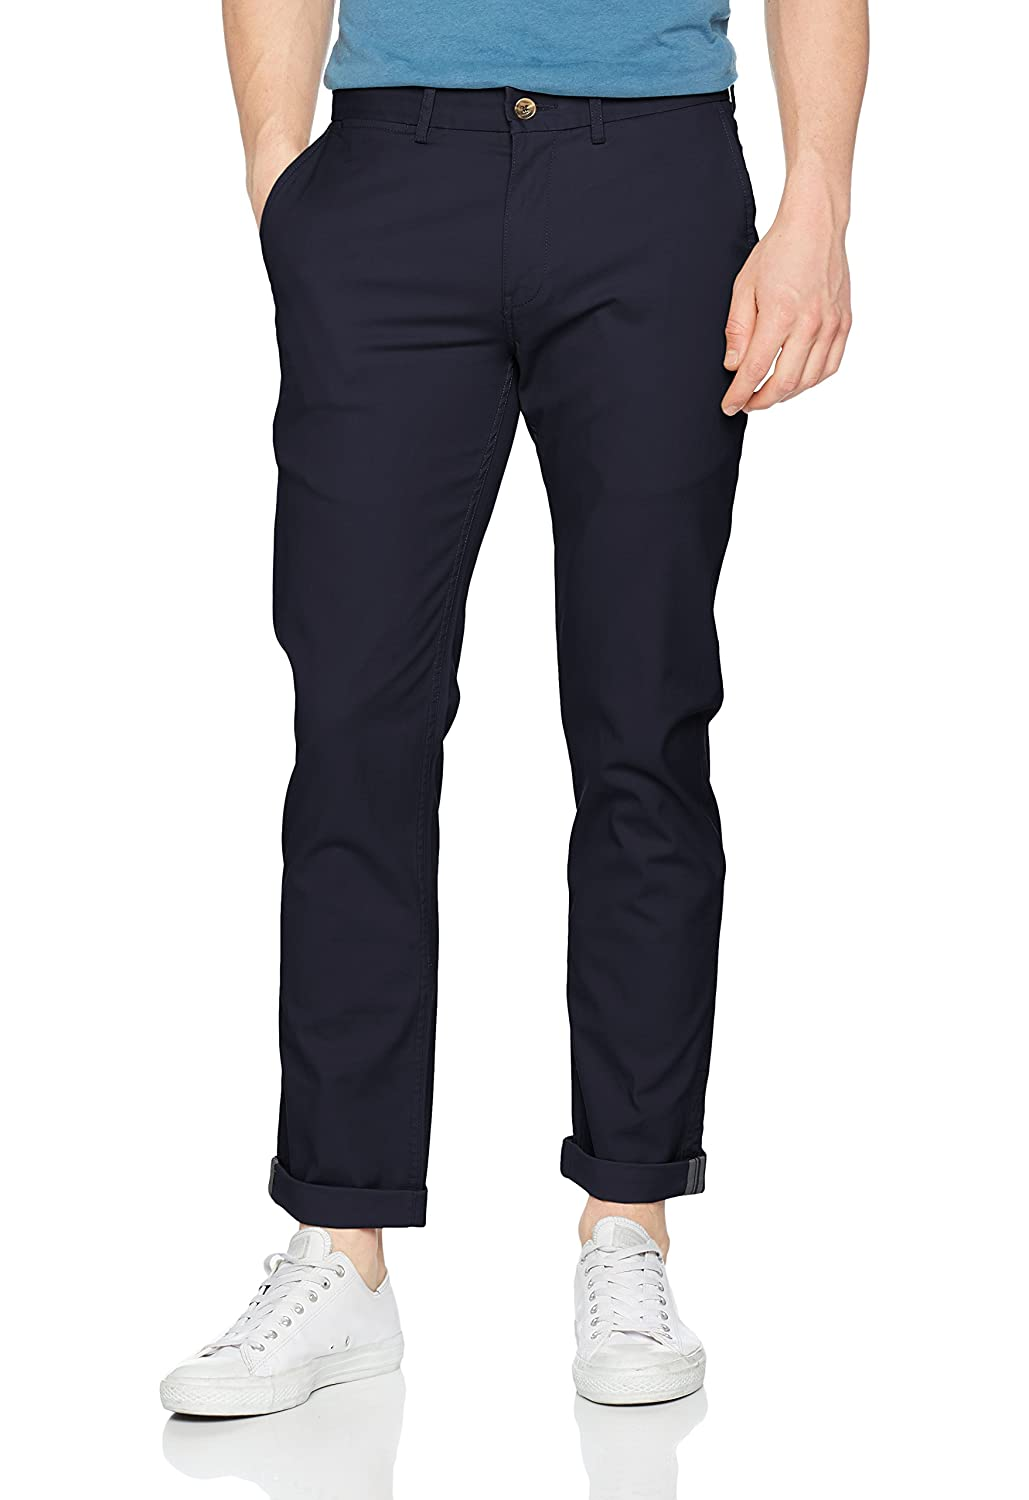 Ben Sherman Men's Stretch Chino Trousers